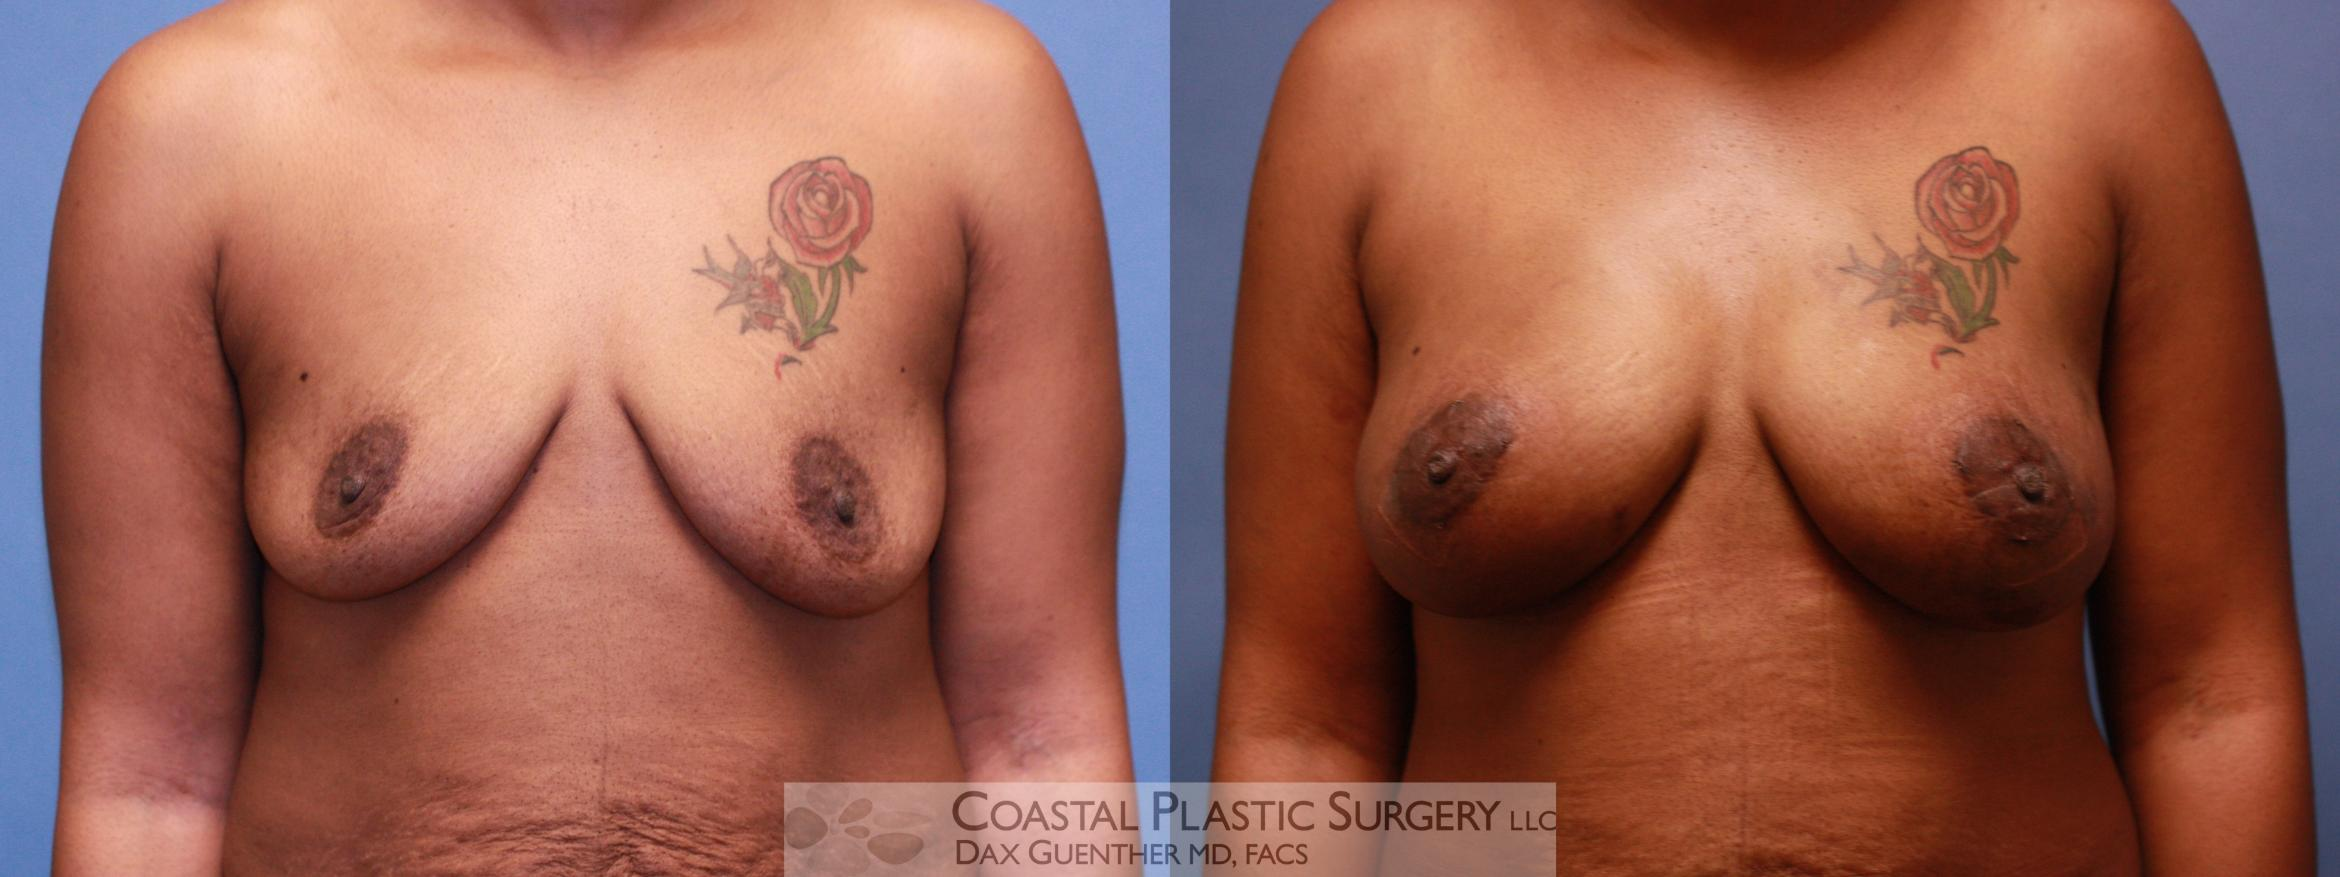 Breast Fat Transfer Before & After Photo | Hingham, Boston & Nantucket, MA | Dax Guenther, MD: Coastal Plastic Surgery